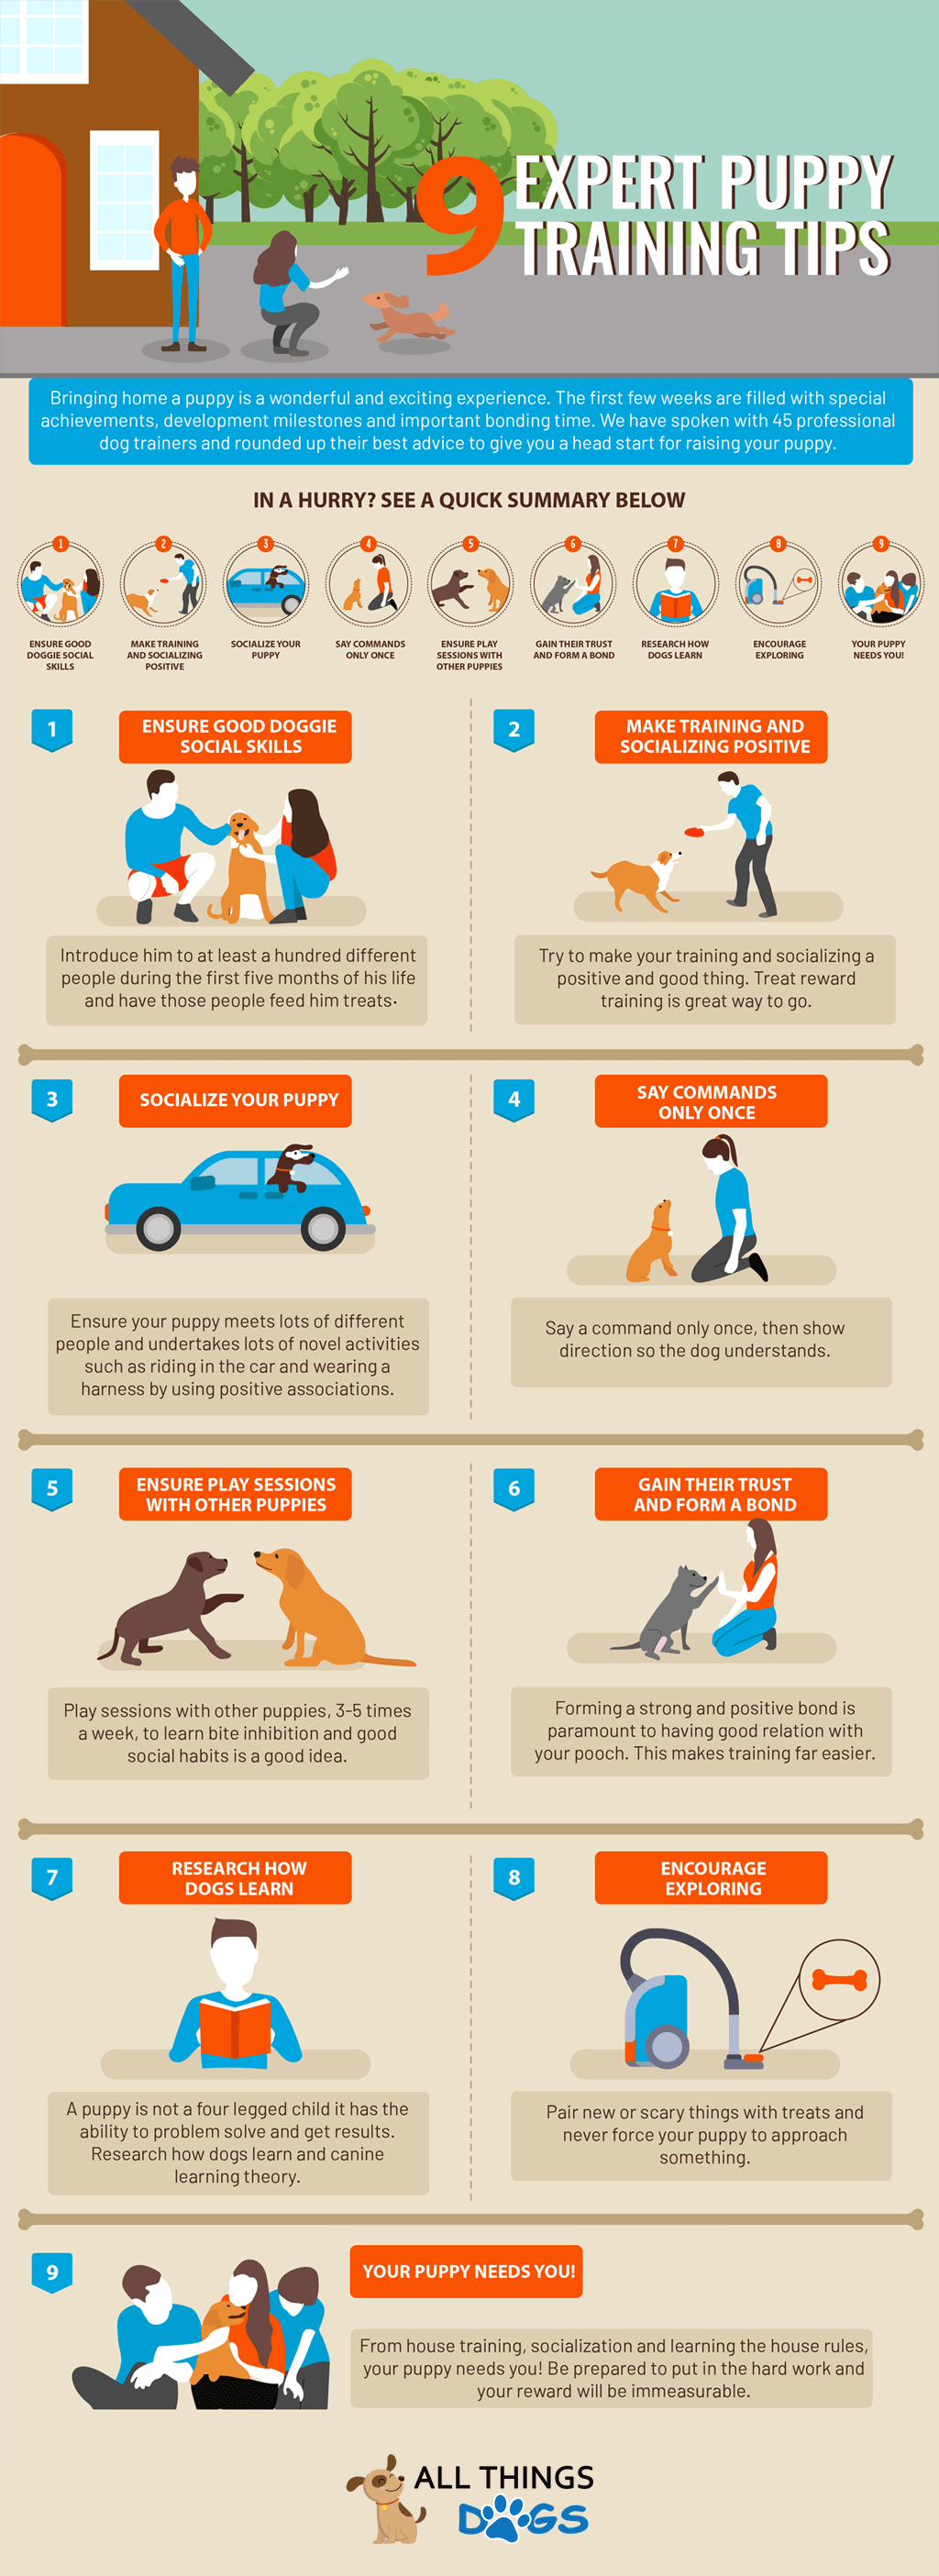 Puppy Training Tips: 45 Dog Experts Share Their Secrets